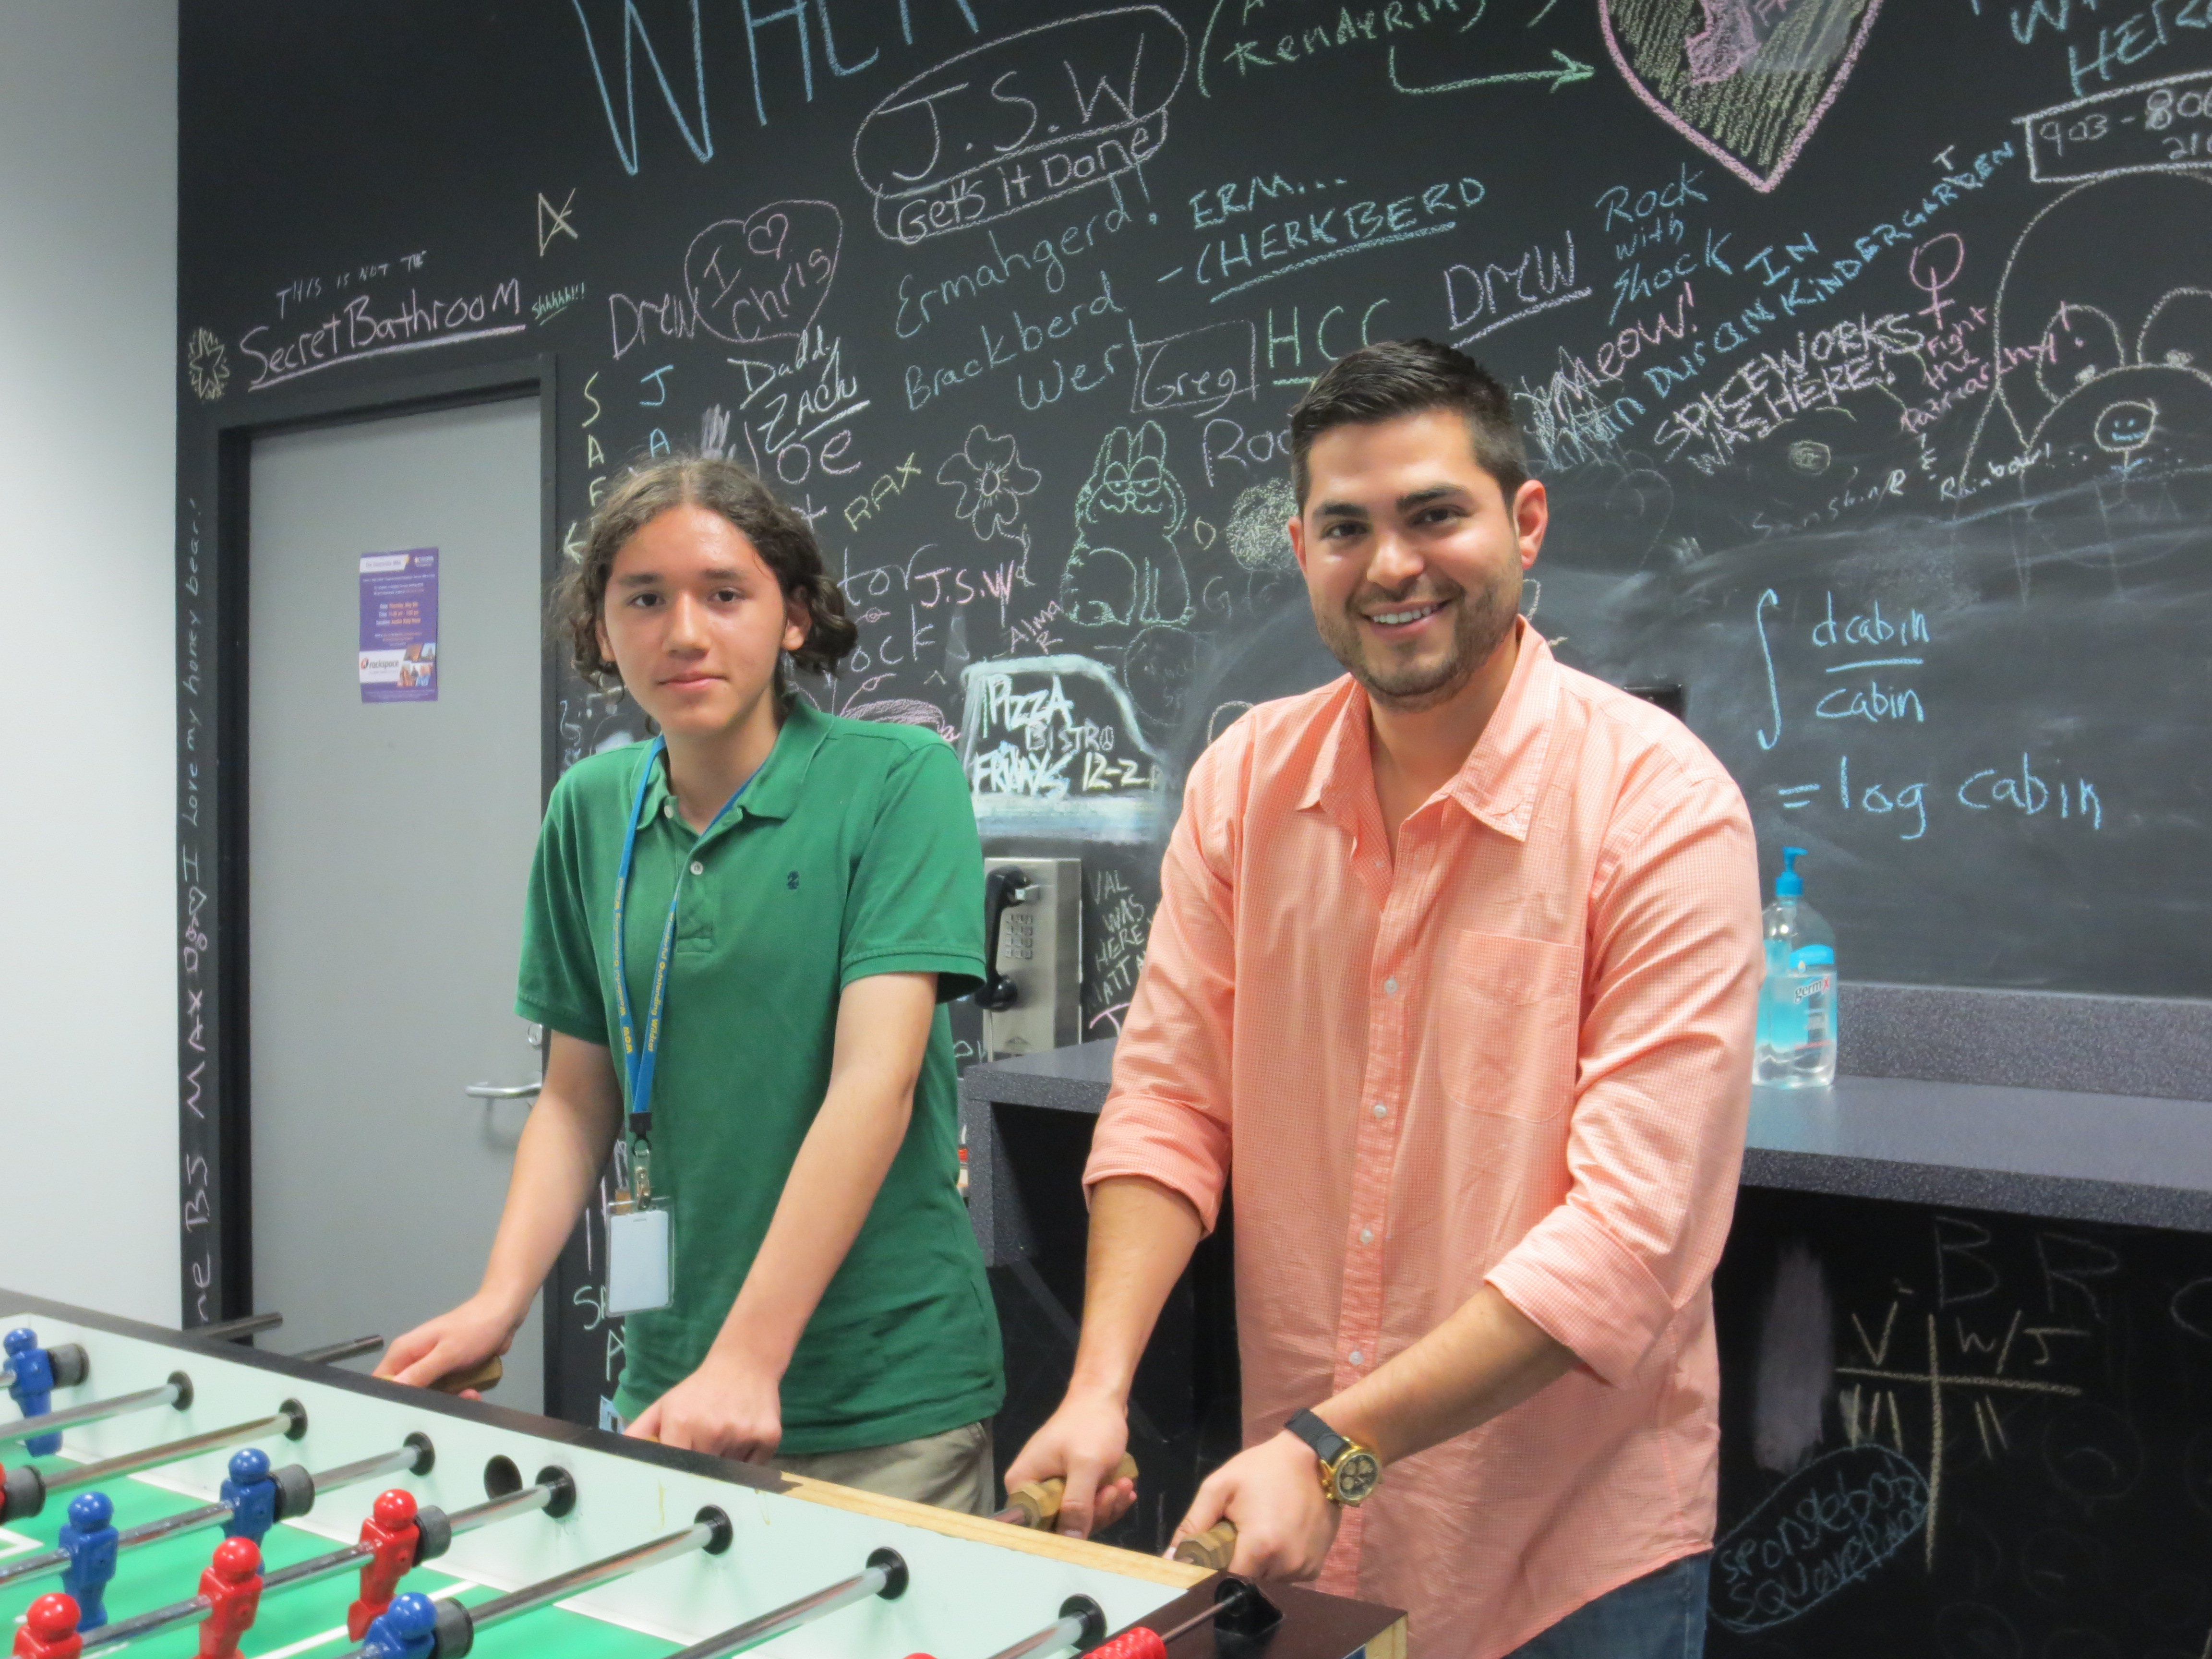 Little Brother and Big Brother enjoying some foosball in the Rackspace game room!